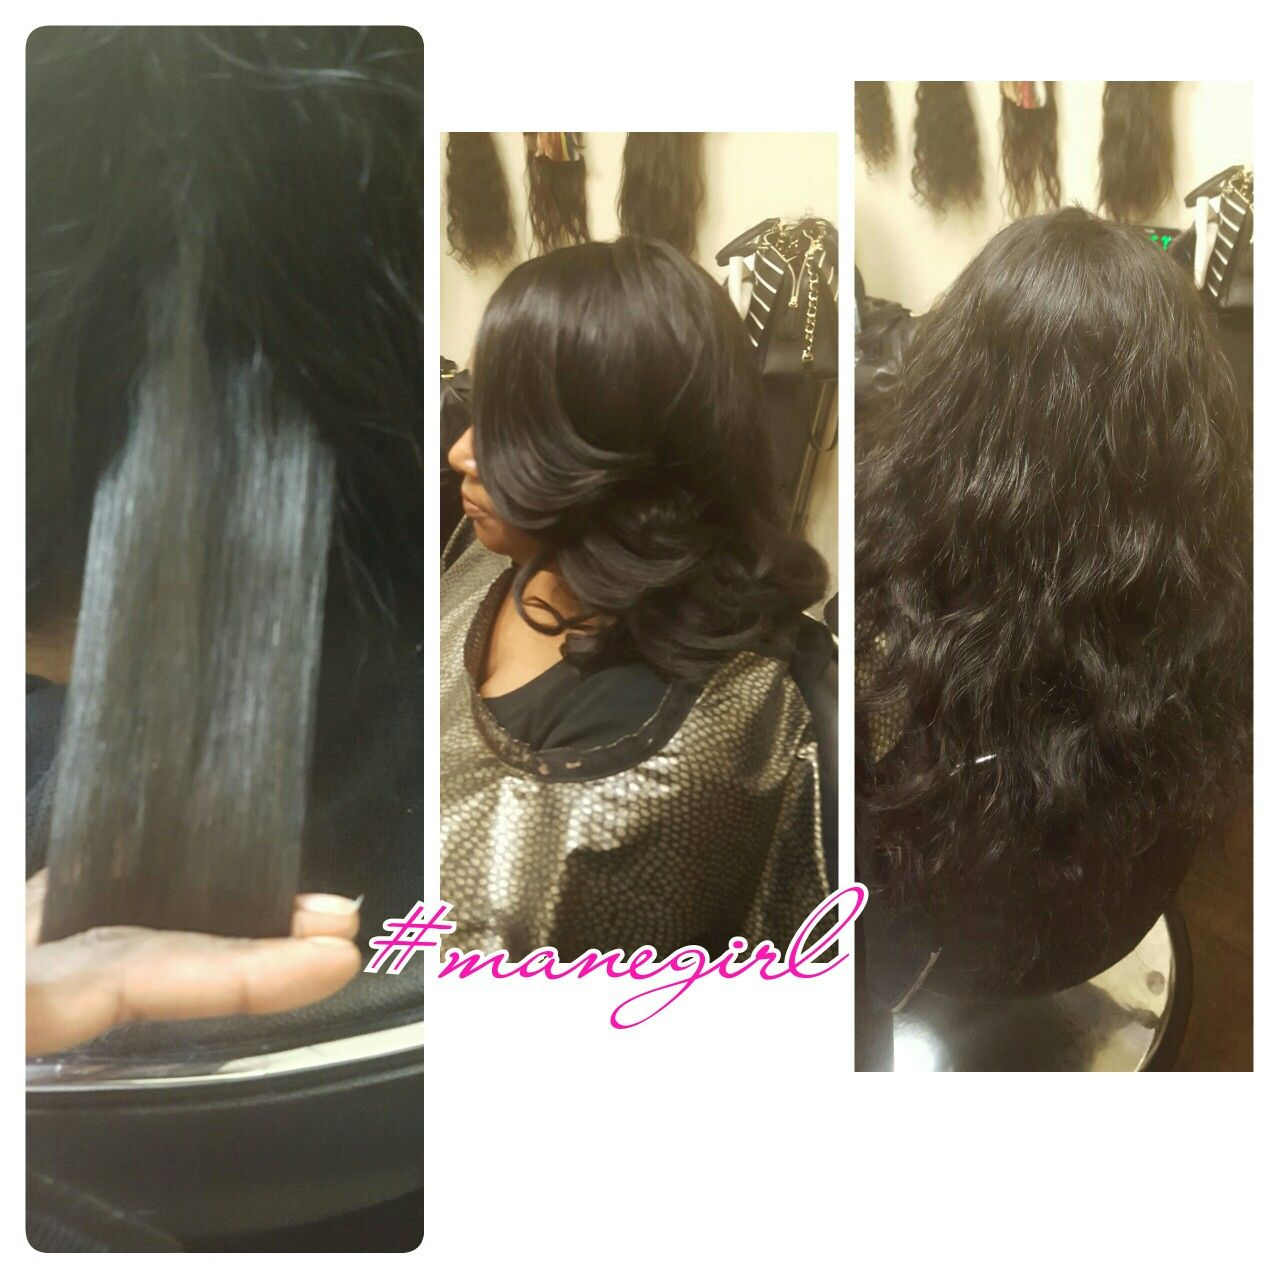 Rare Curl 1 Cambodian W Mane Girl Best Weaves And Hair Replacement